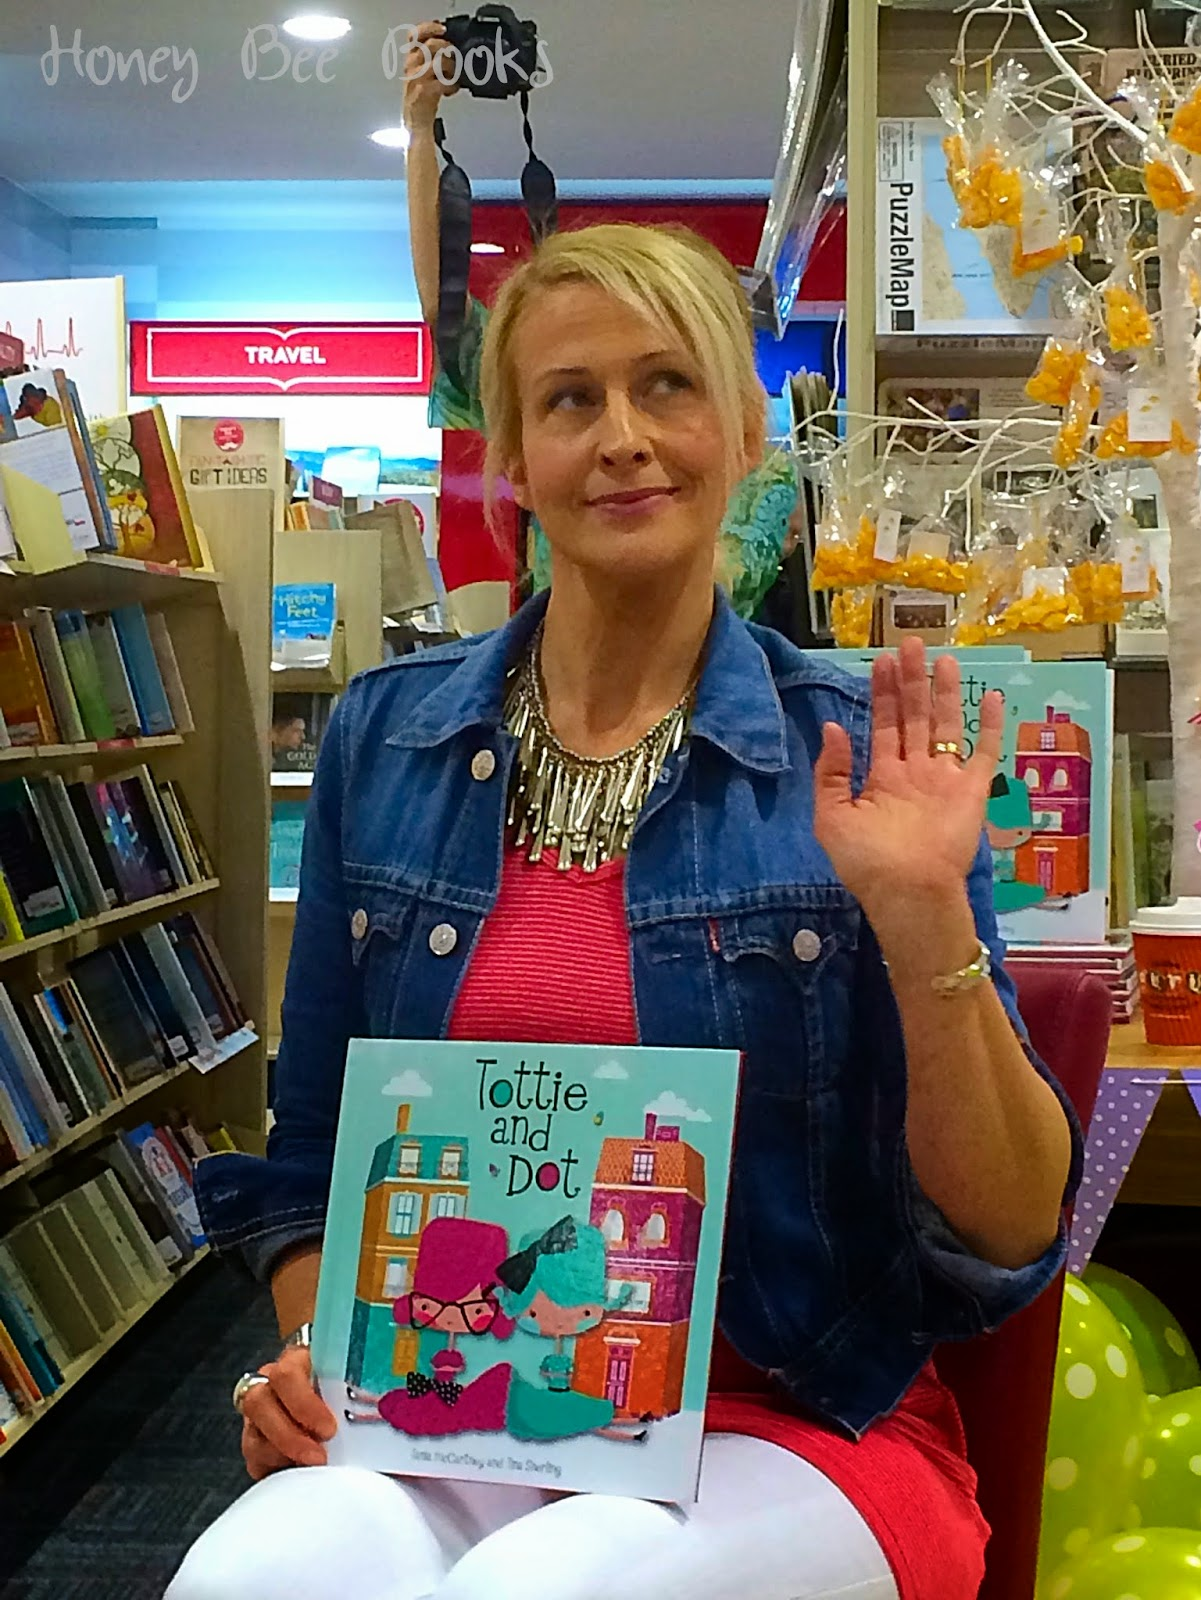 Tania McCartney - author of Tottie and Dot